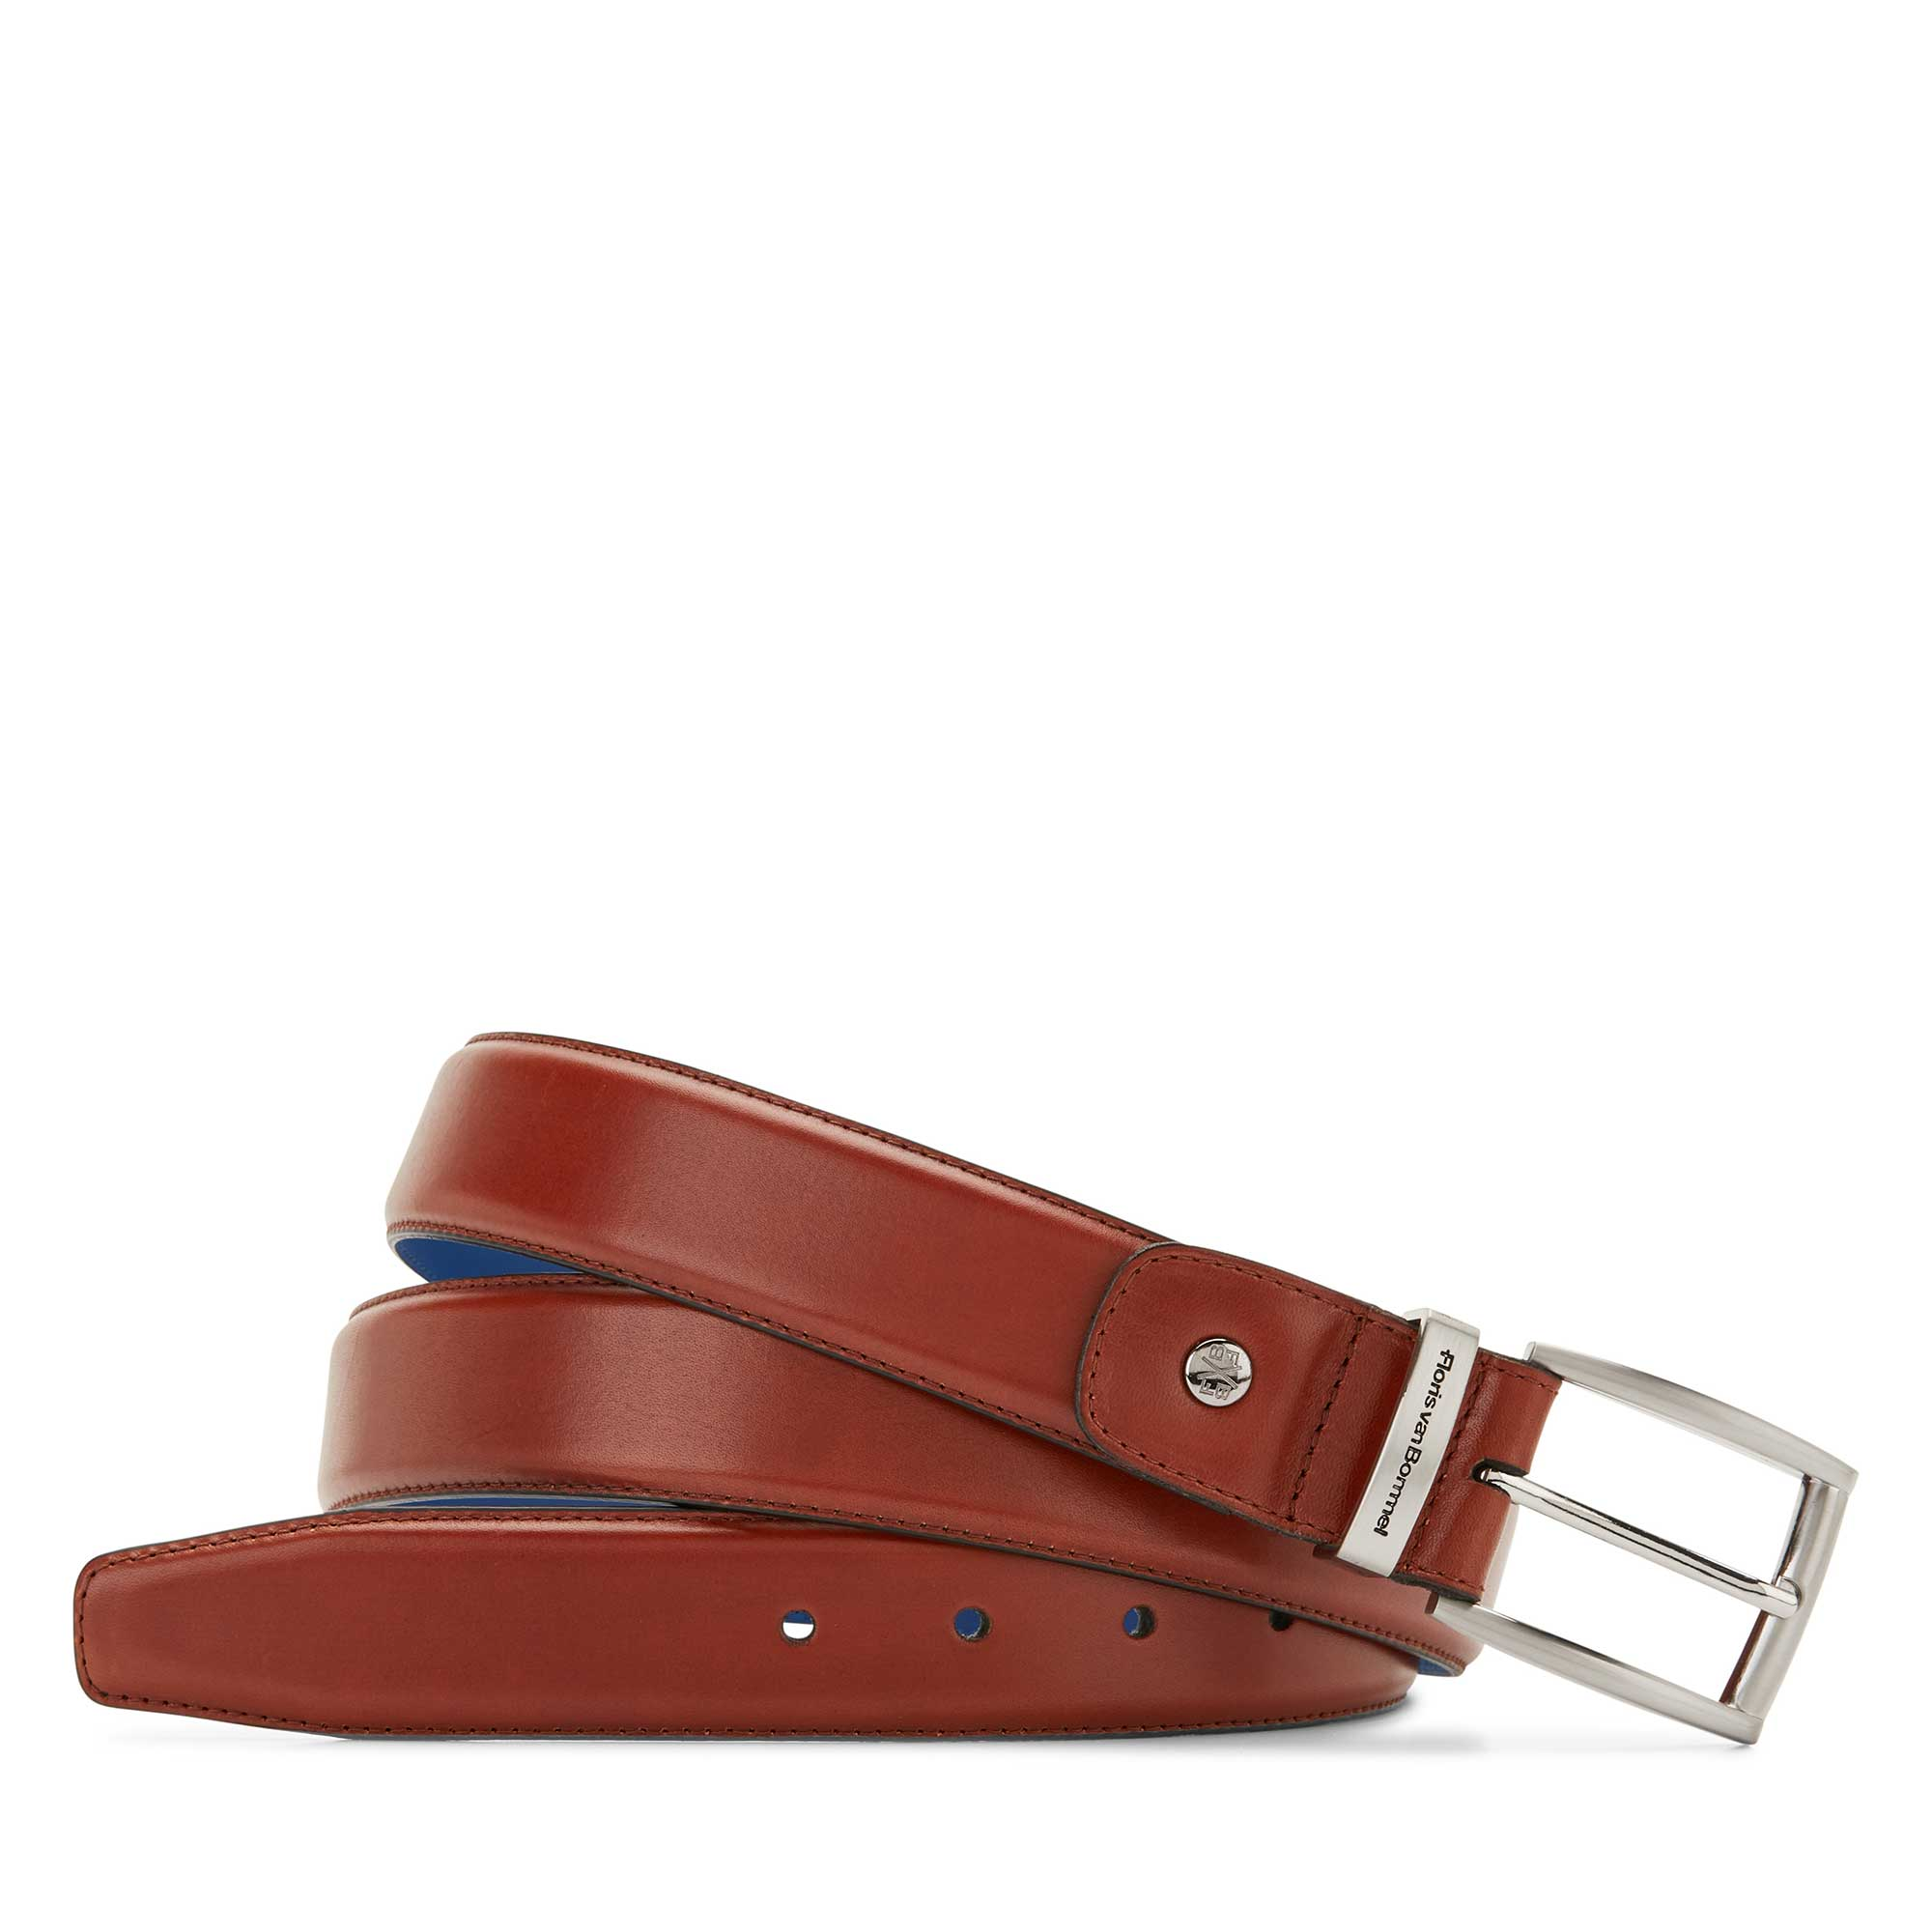 75144/07 - Dark cognac calf's leathet belt